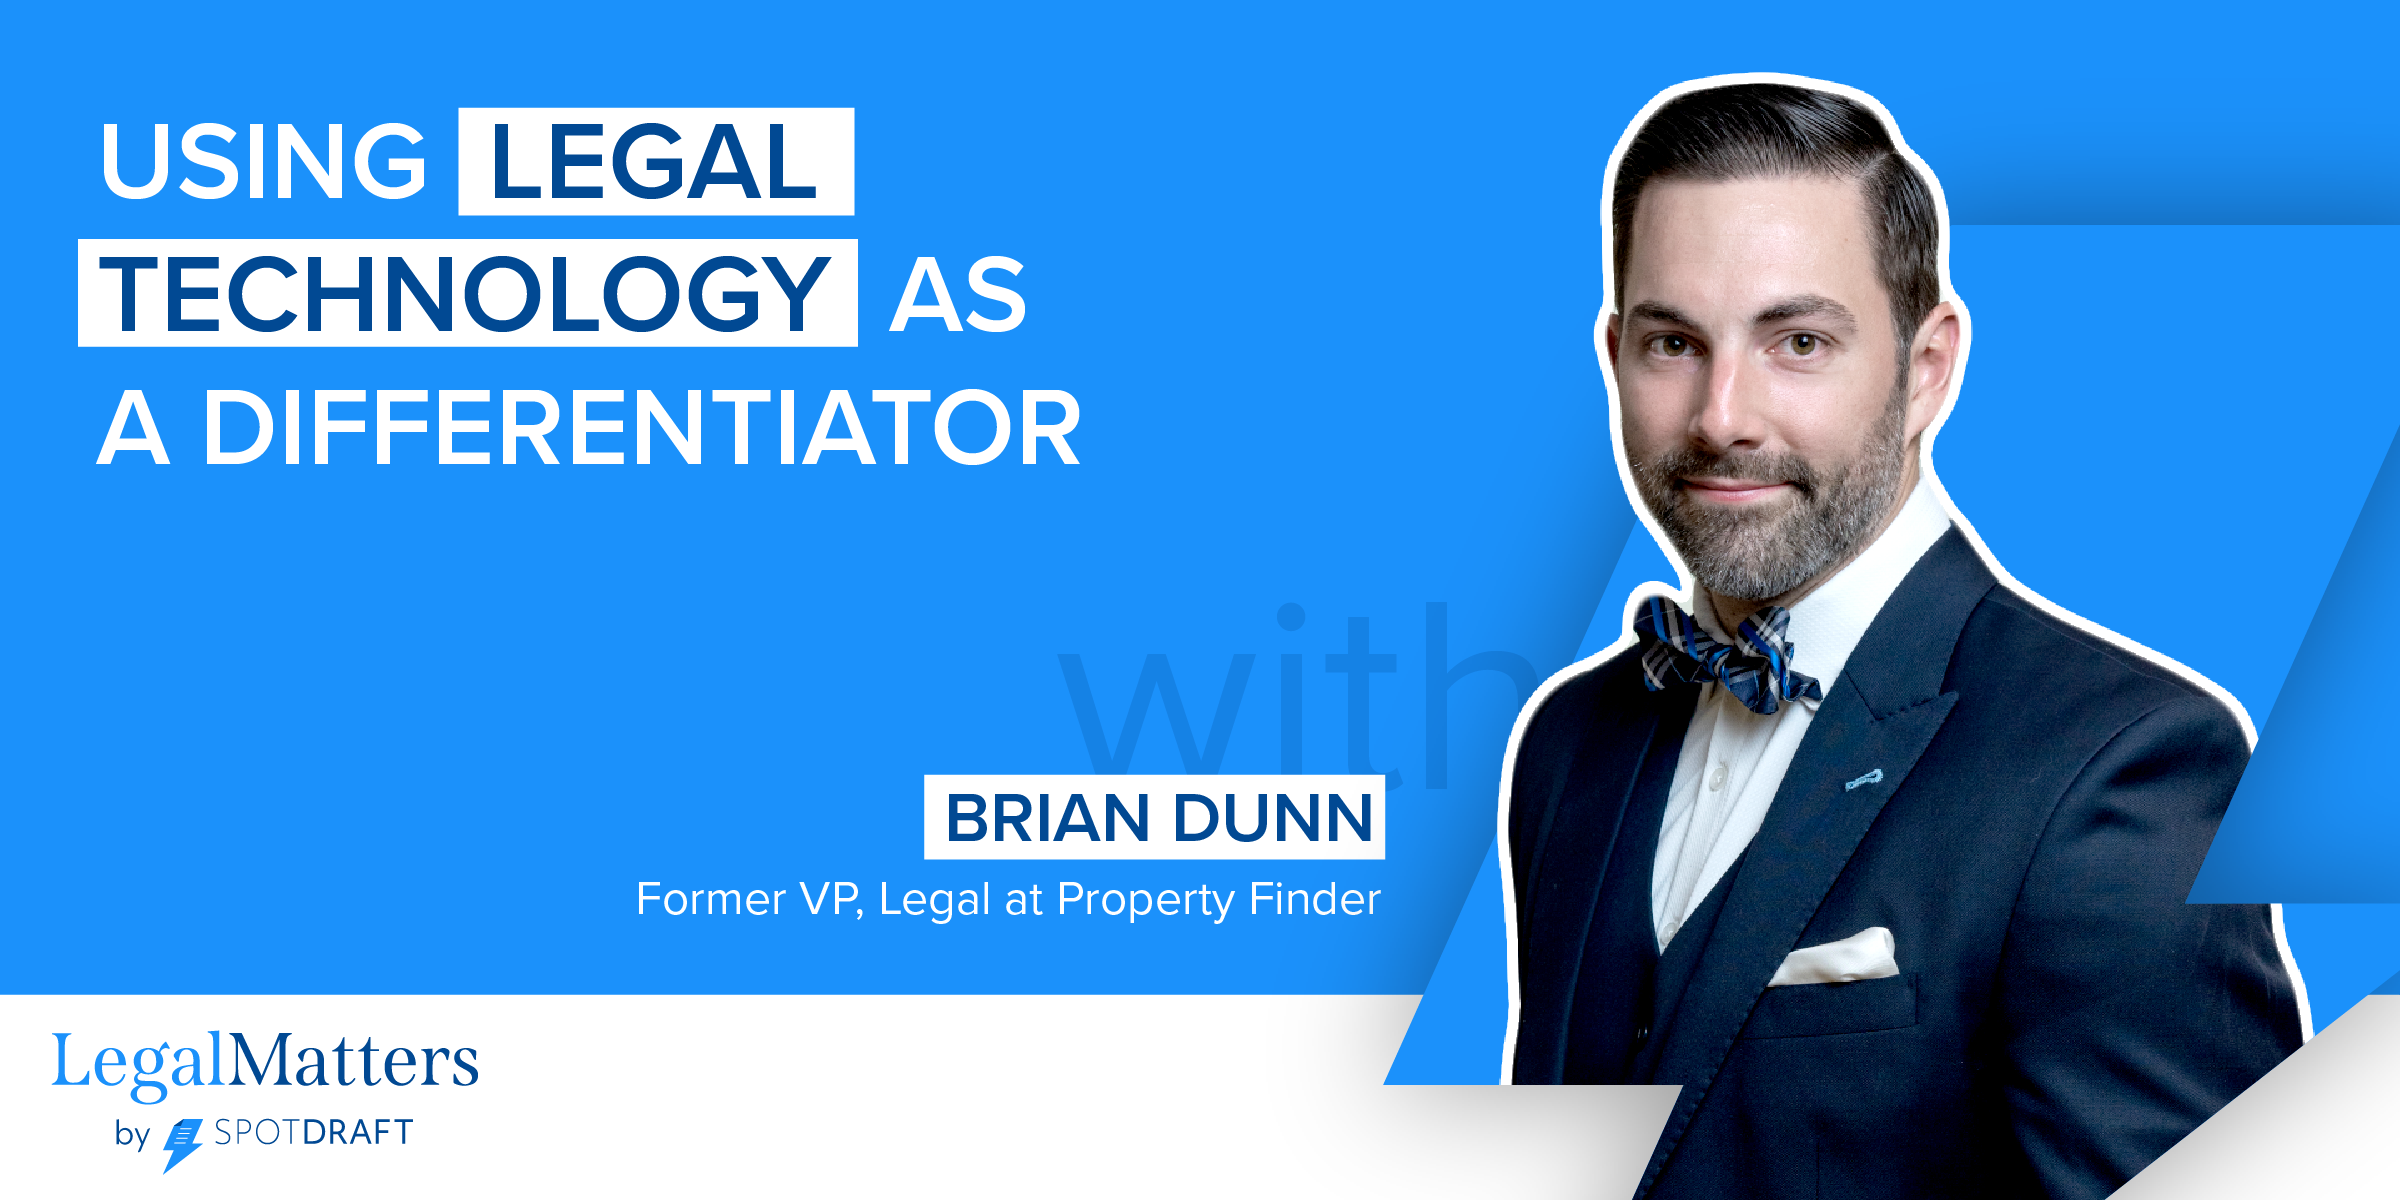 using legal technology as a differentiator - legalmatters